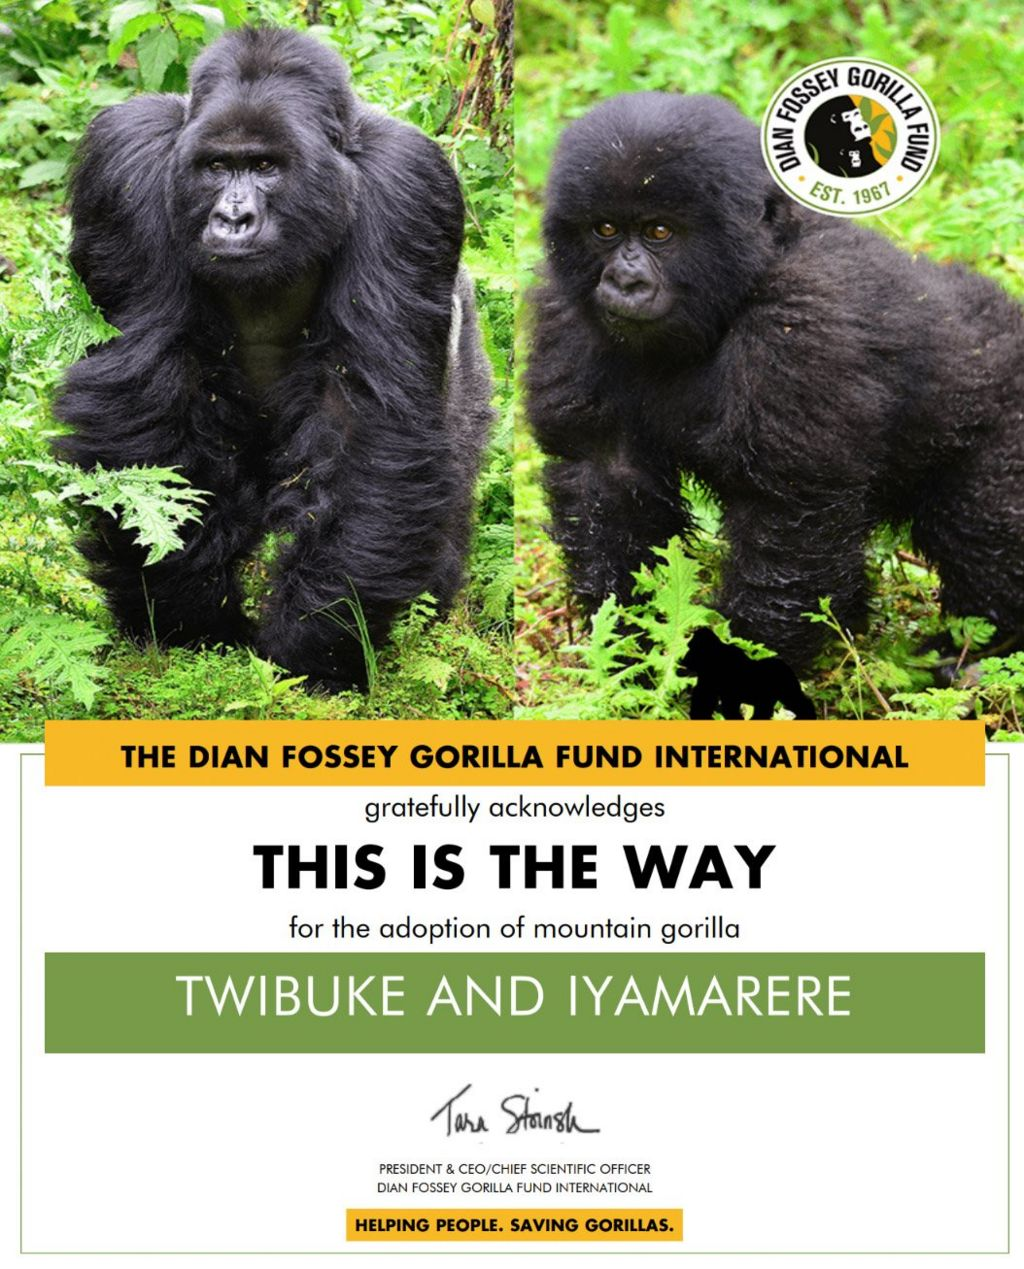 Gorillas Twibuke and Iyamarere pictured as part of a charity adoption certificate.